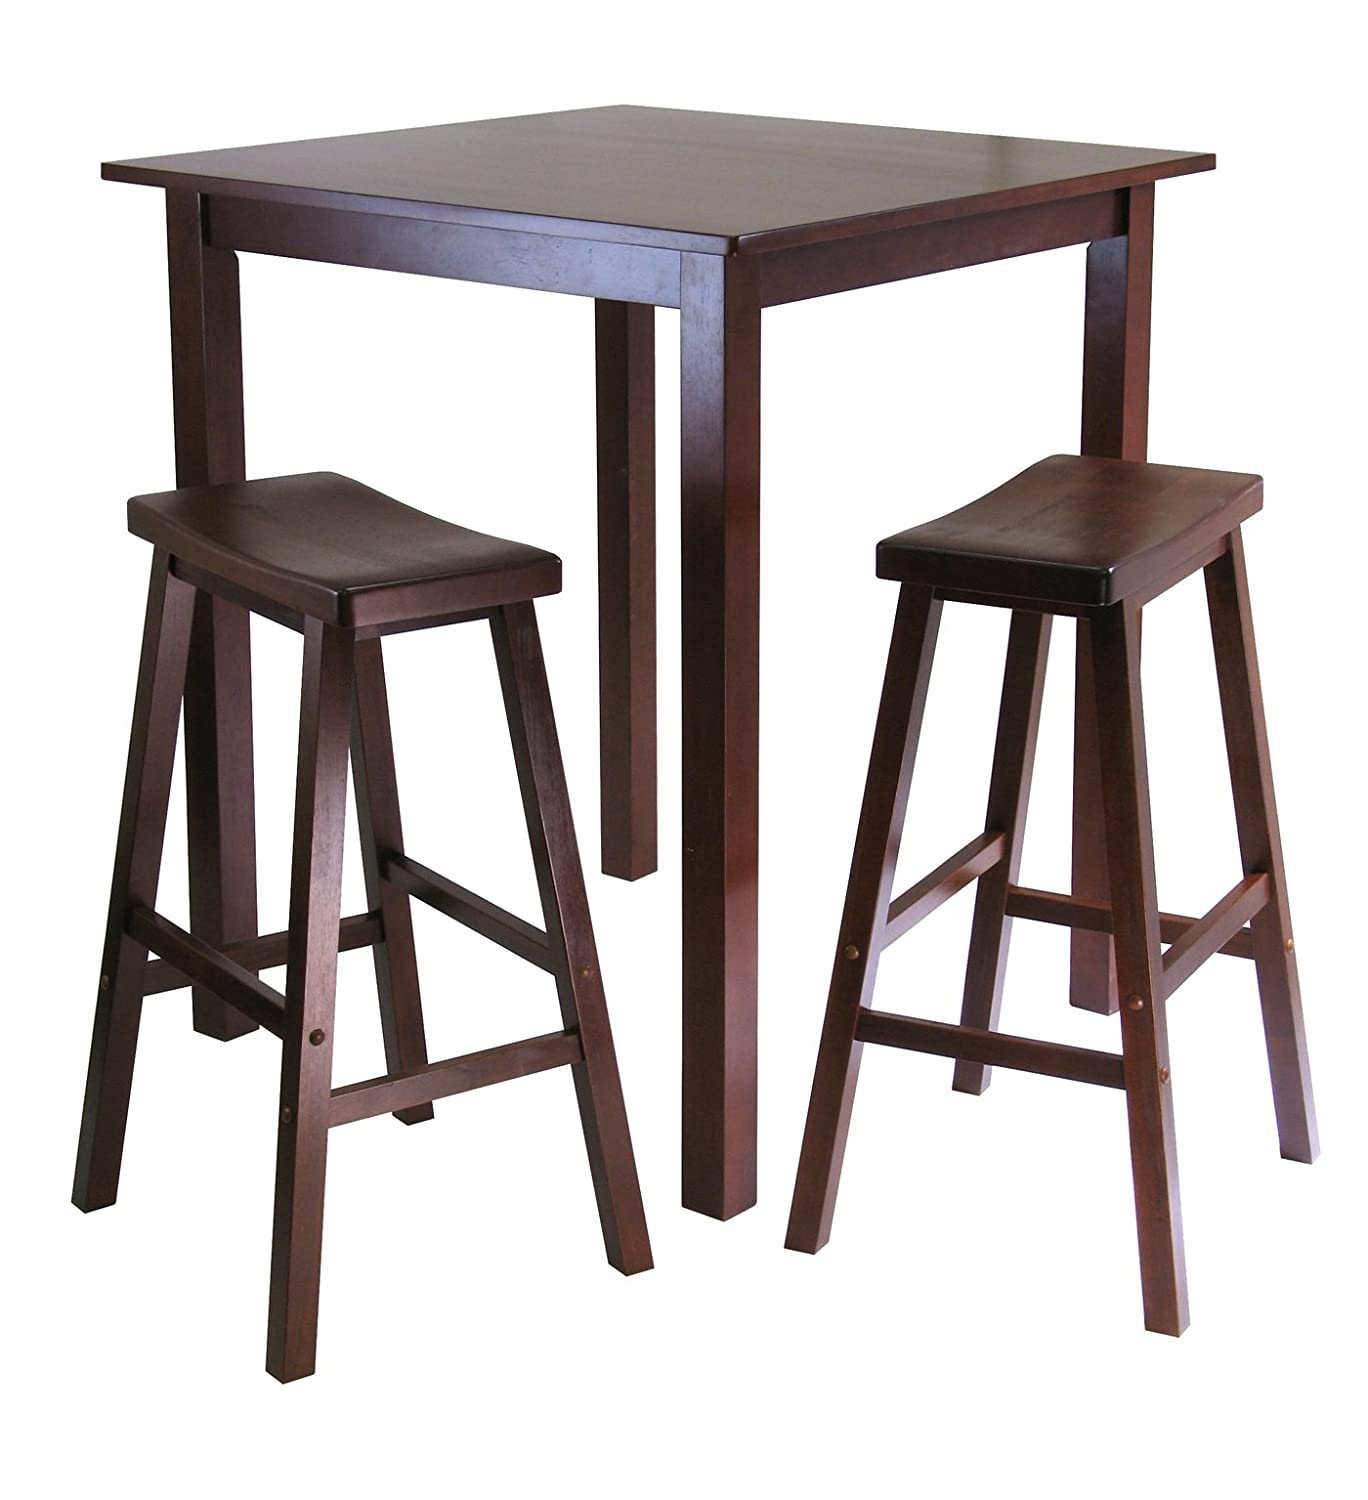 Amazon.com Winsomeu0027s Parkland 3-Piece Square High/Pub Table Set in Antique Walnut Finish Kitchen u0026 Dining  sc 1 st  Amazon.com & Amazon.com: Winsomeu0027s Parkland 3-Piece Square High/Pub Table Set in ...